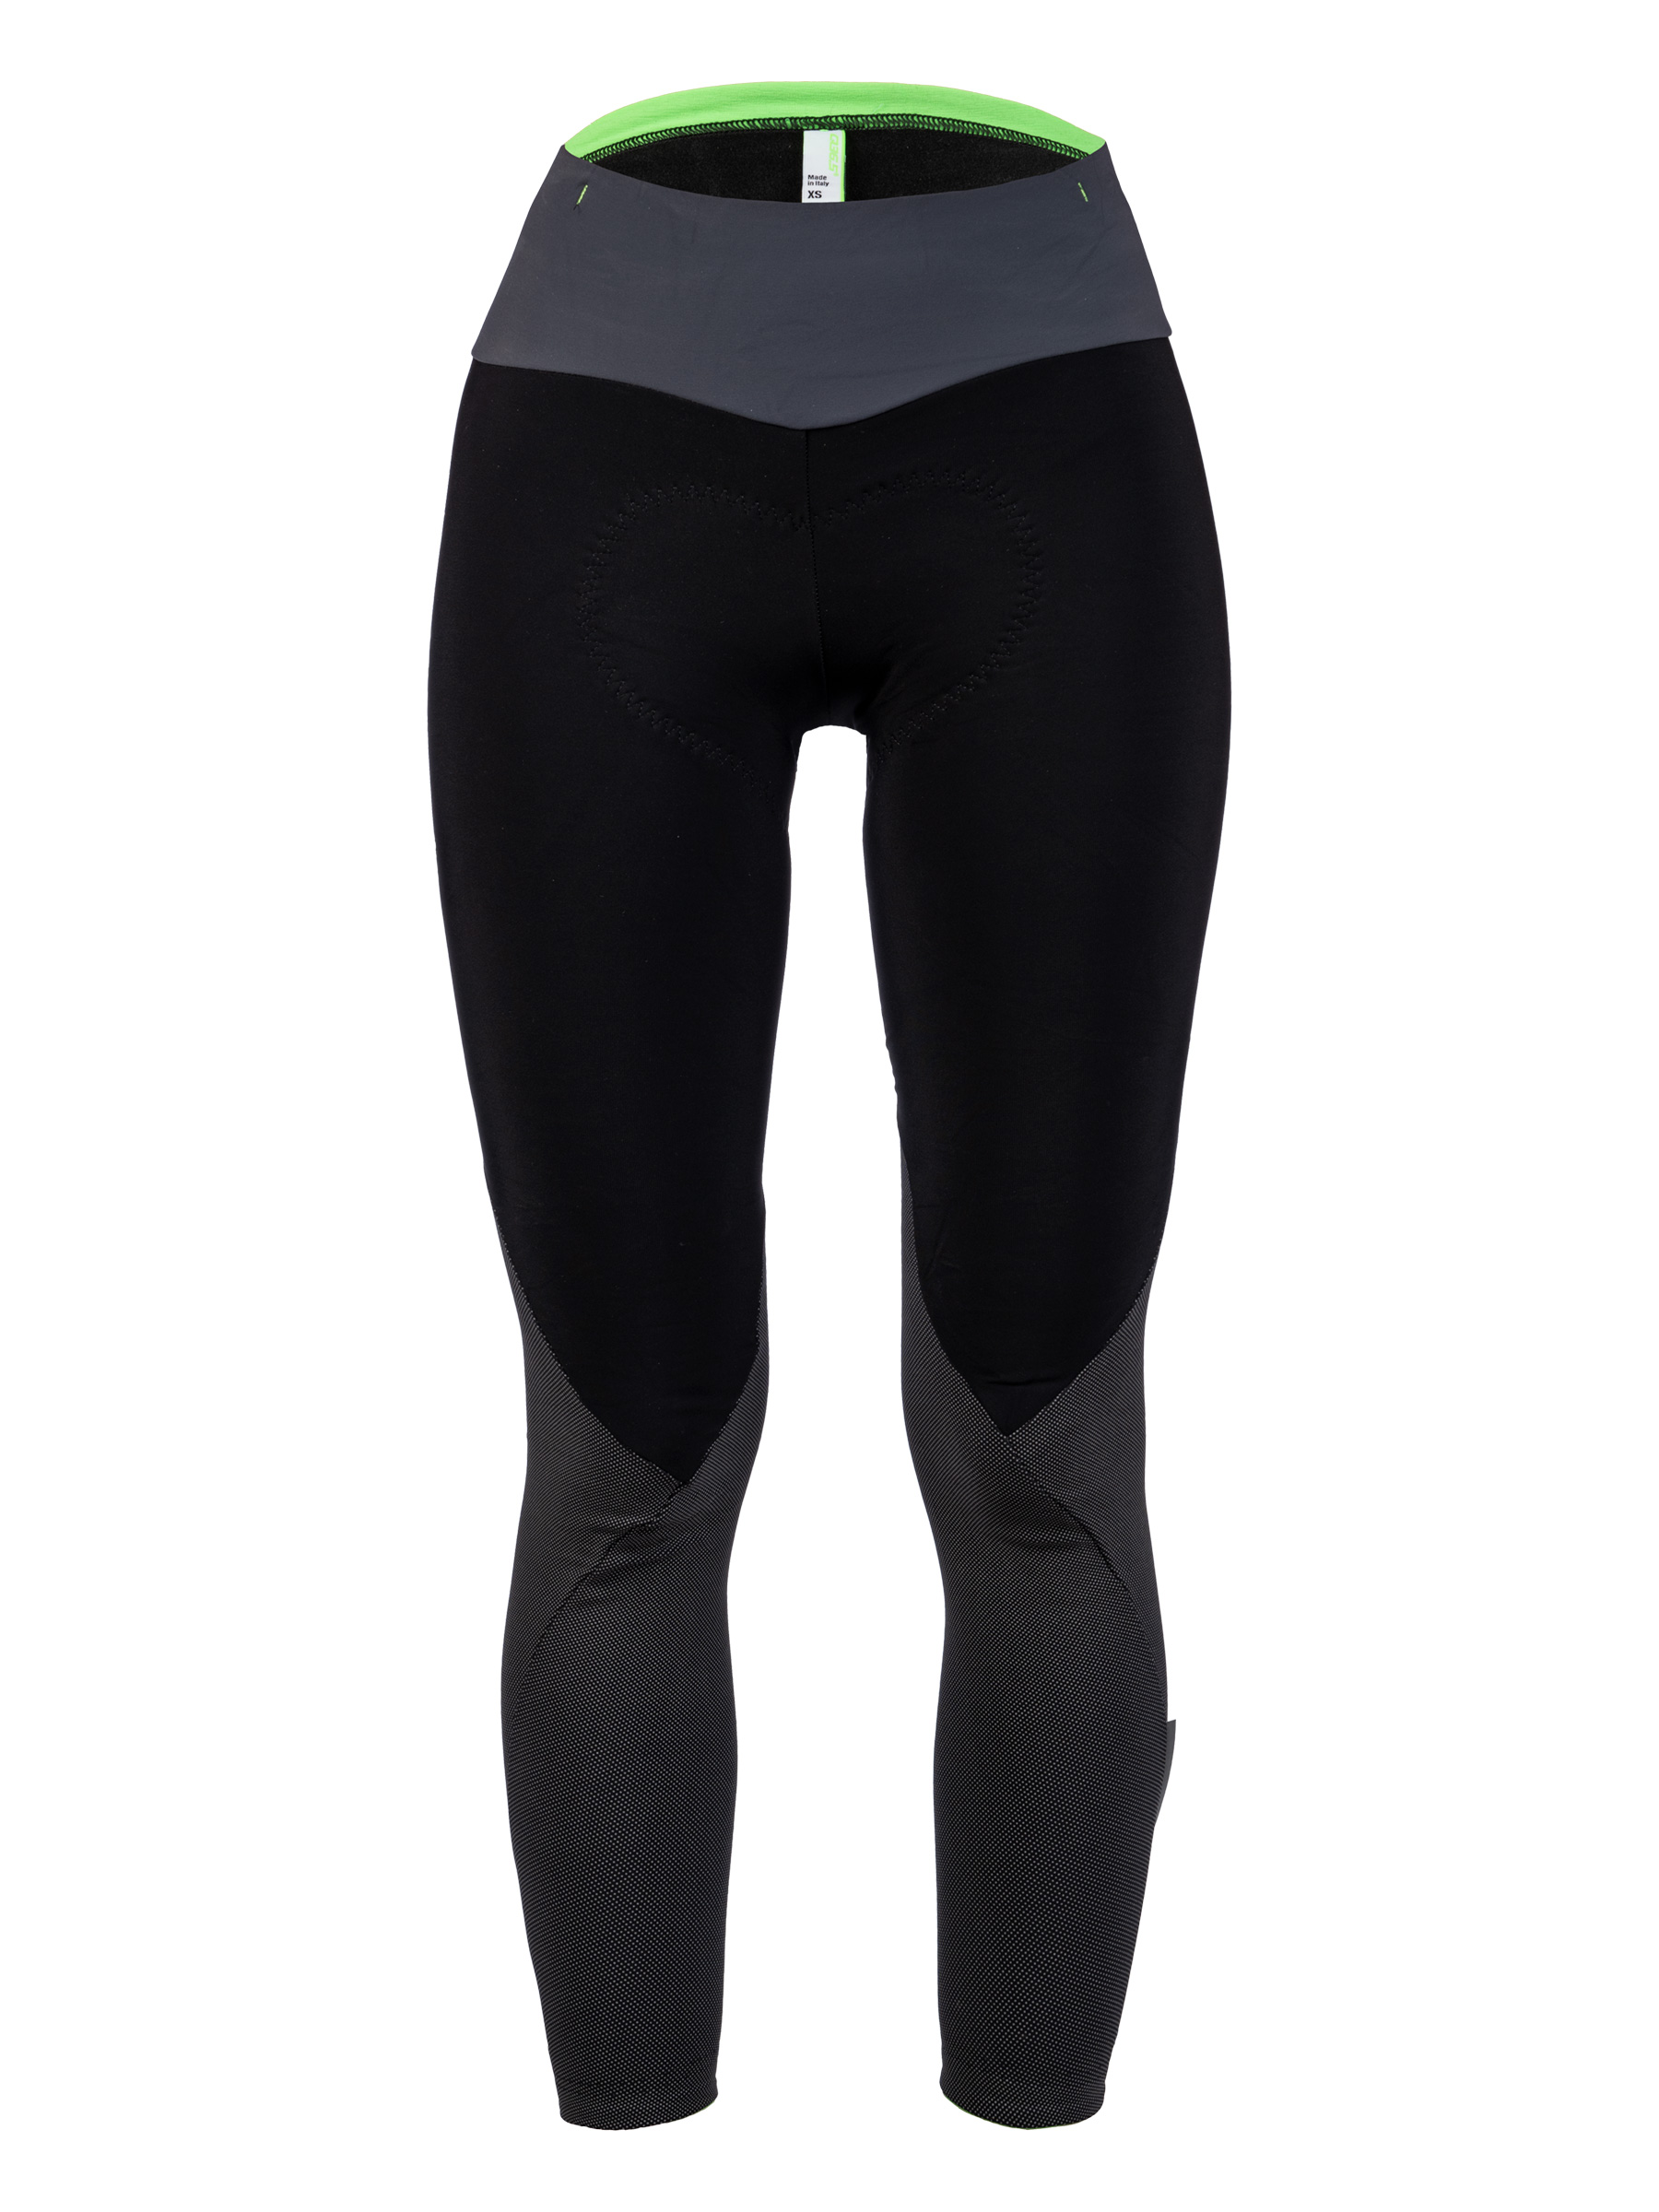 Womens cycling tights Winter tights Lady Q36.5